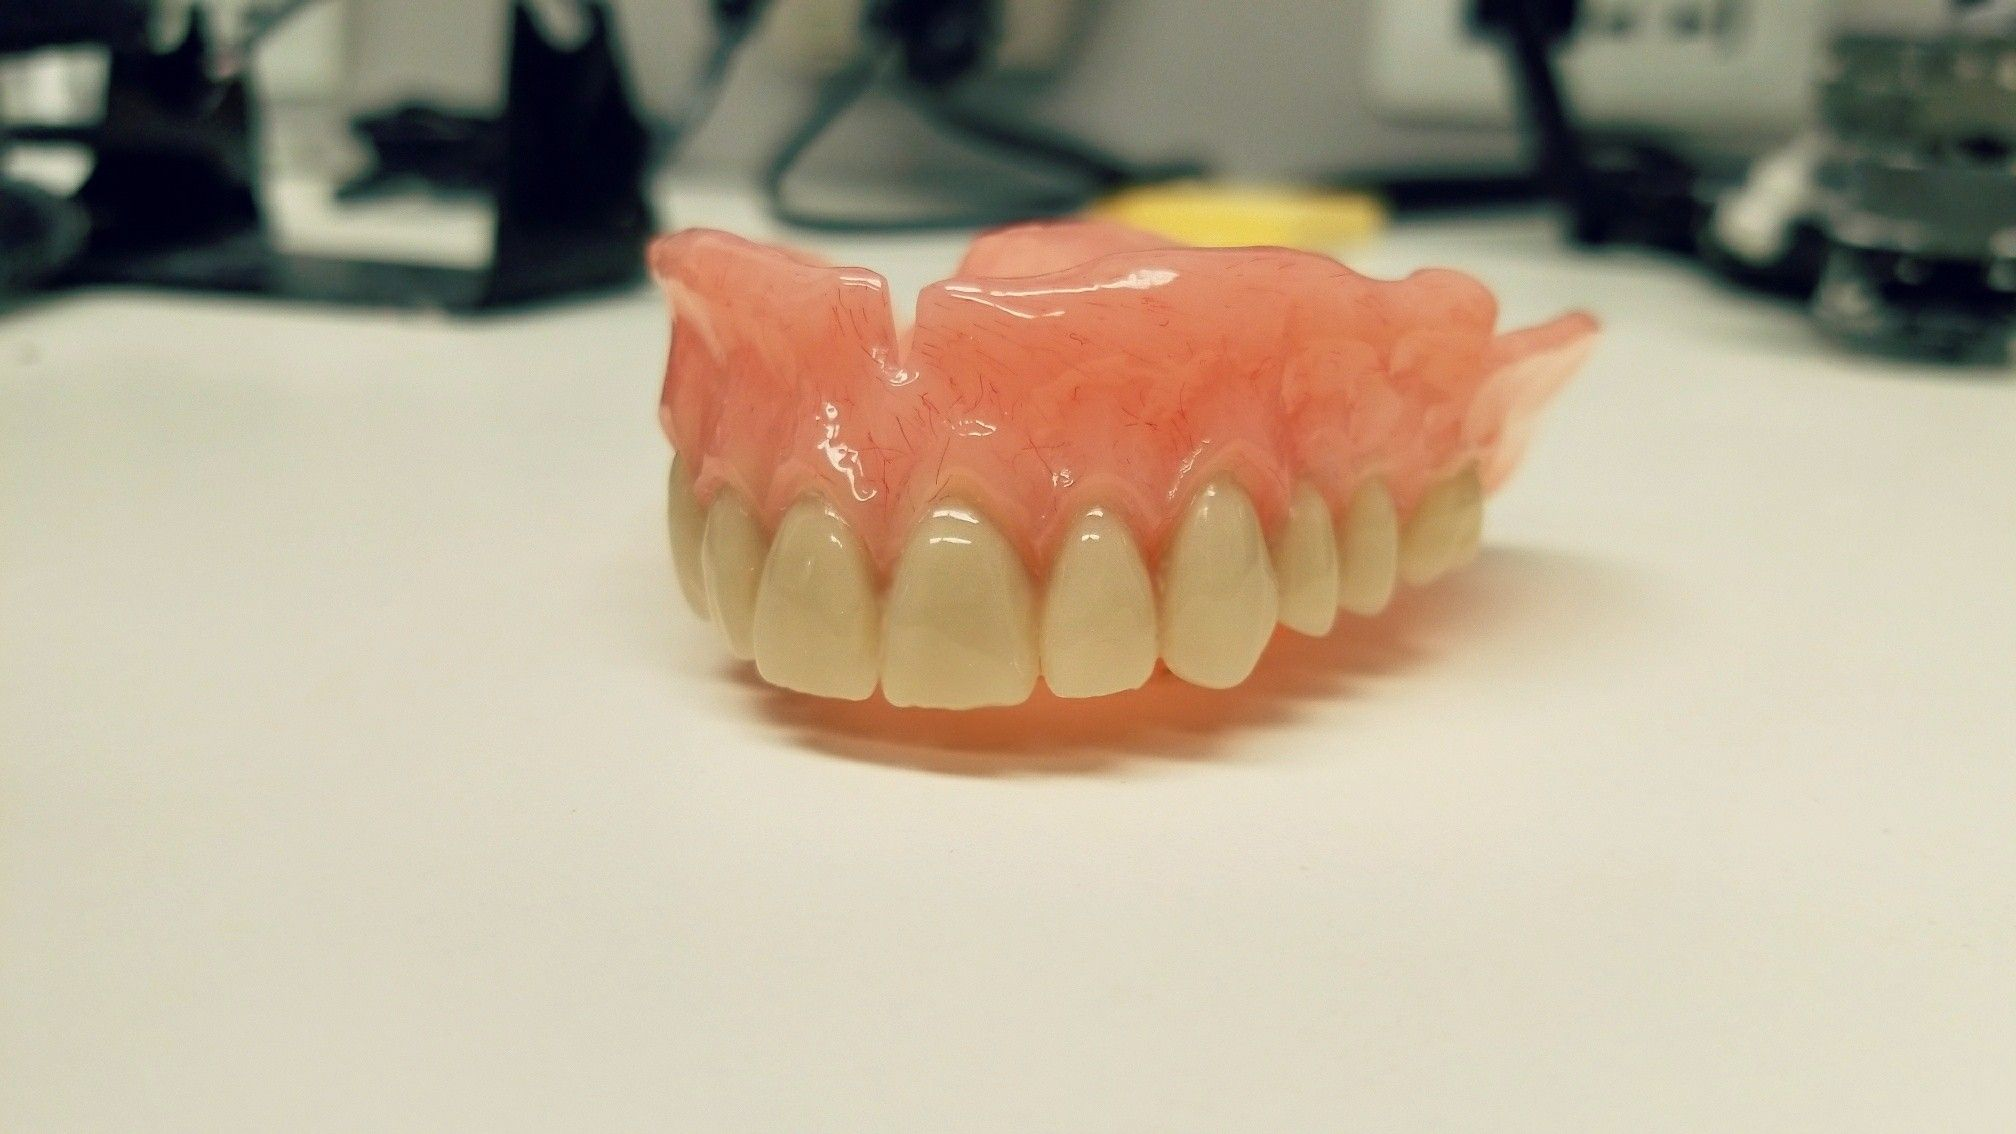 It's always best to go into a denture clinic and ask for a